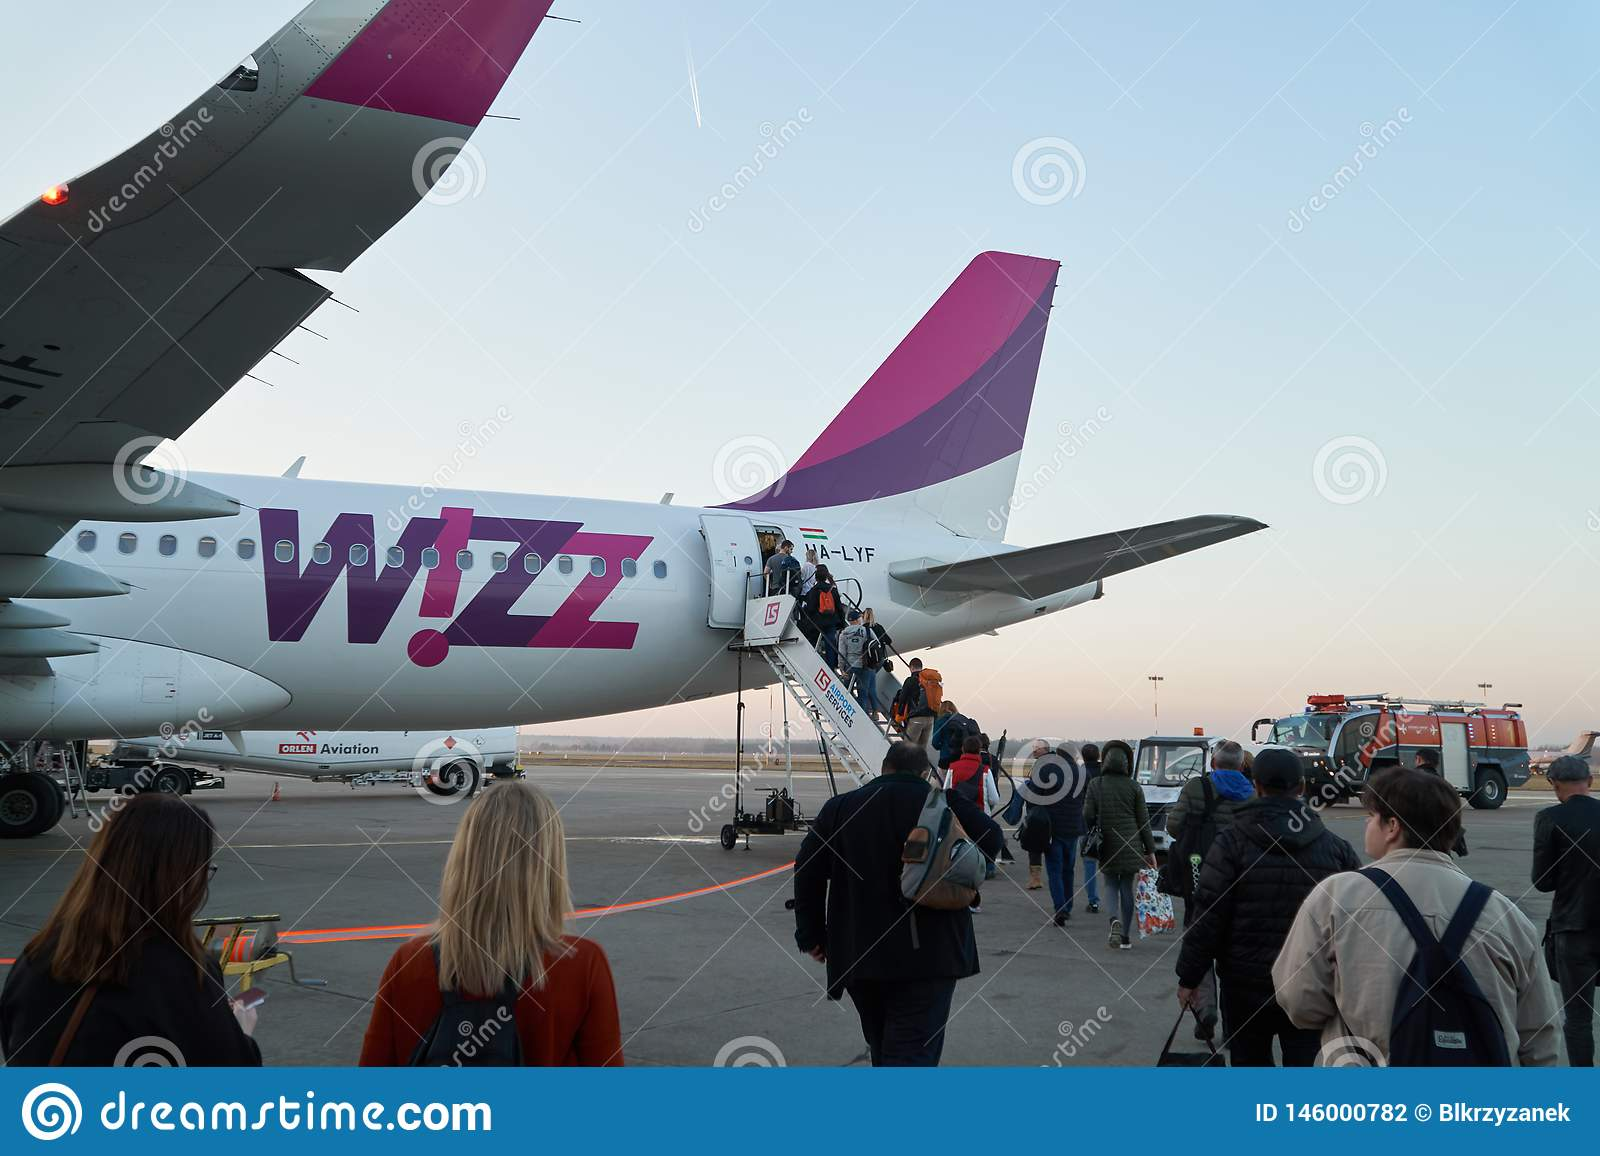 16 Inside Plane Wizzair Photos Free Royalty Free Stock Photos From Dreamstime